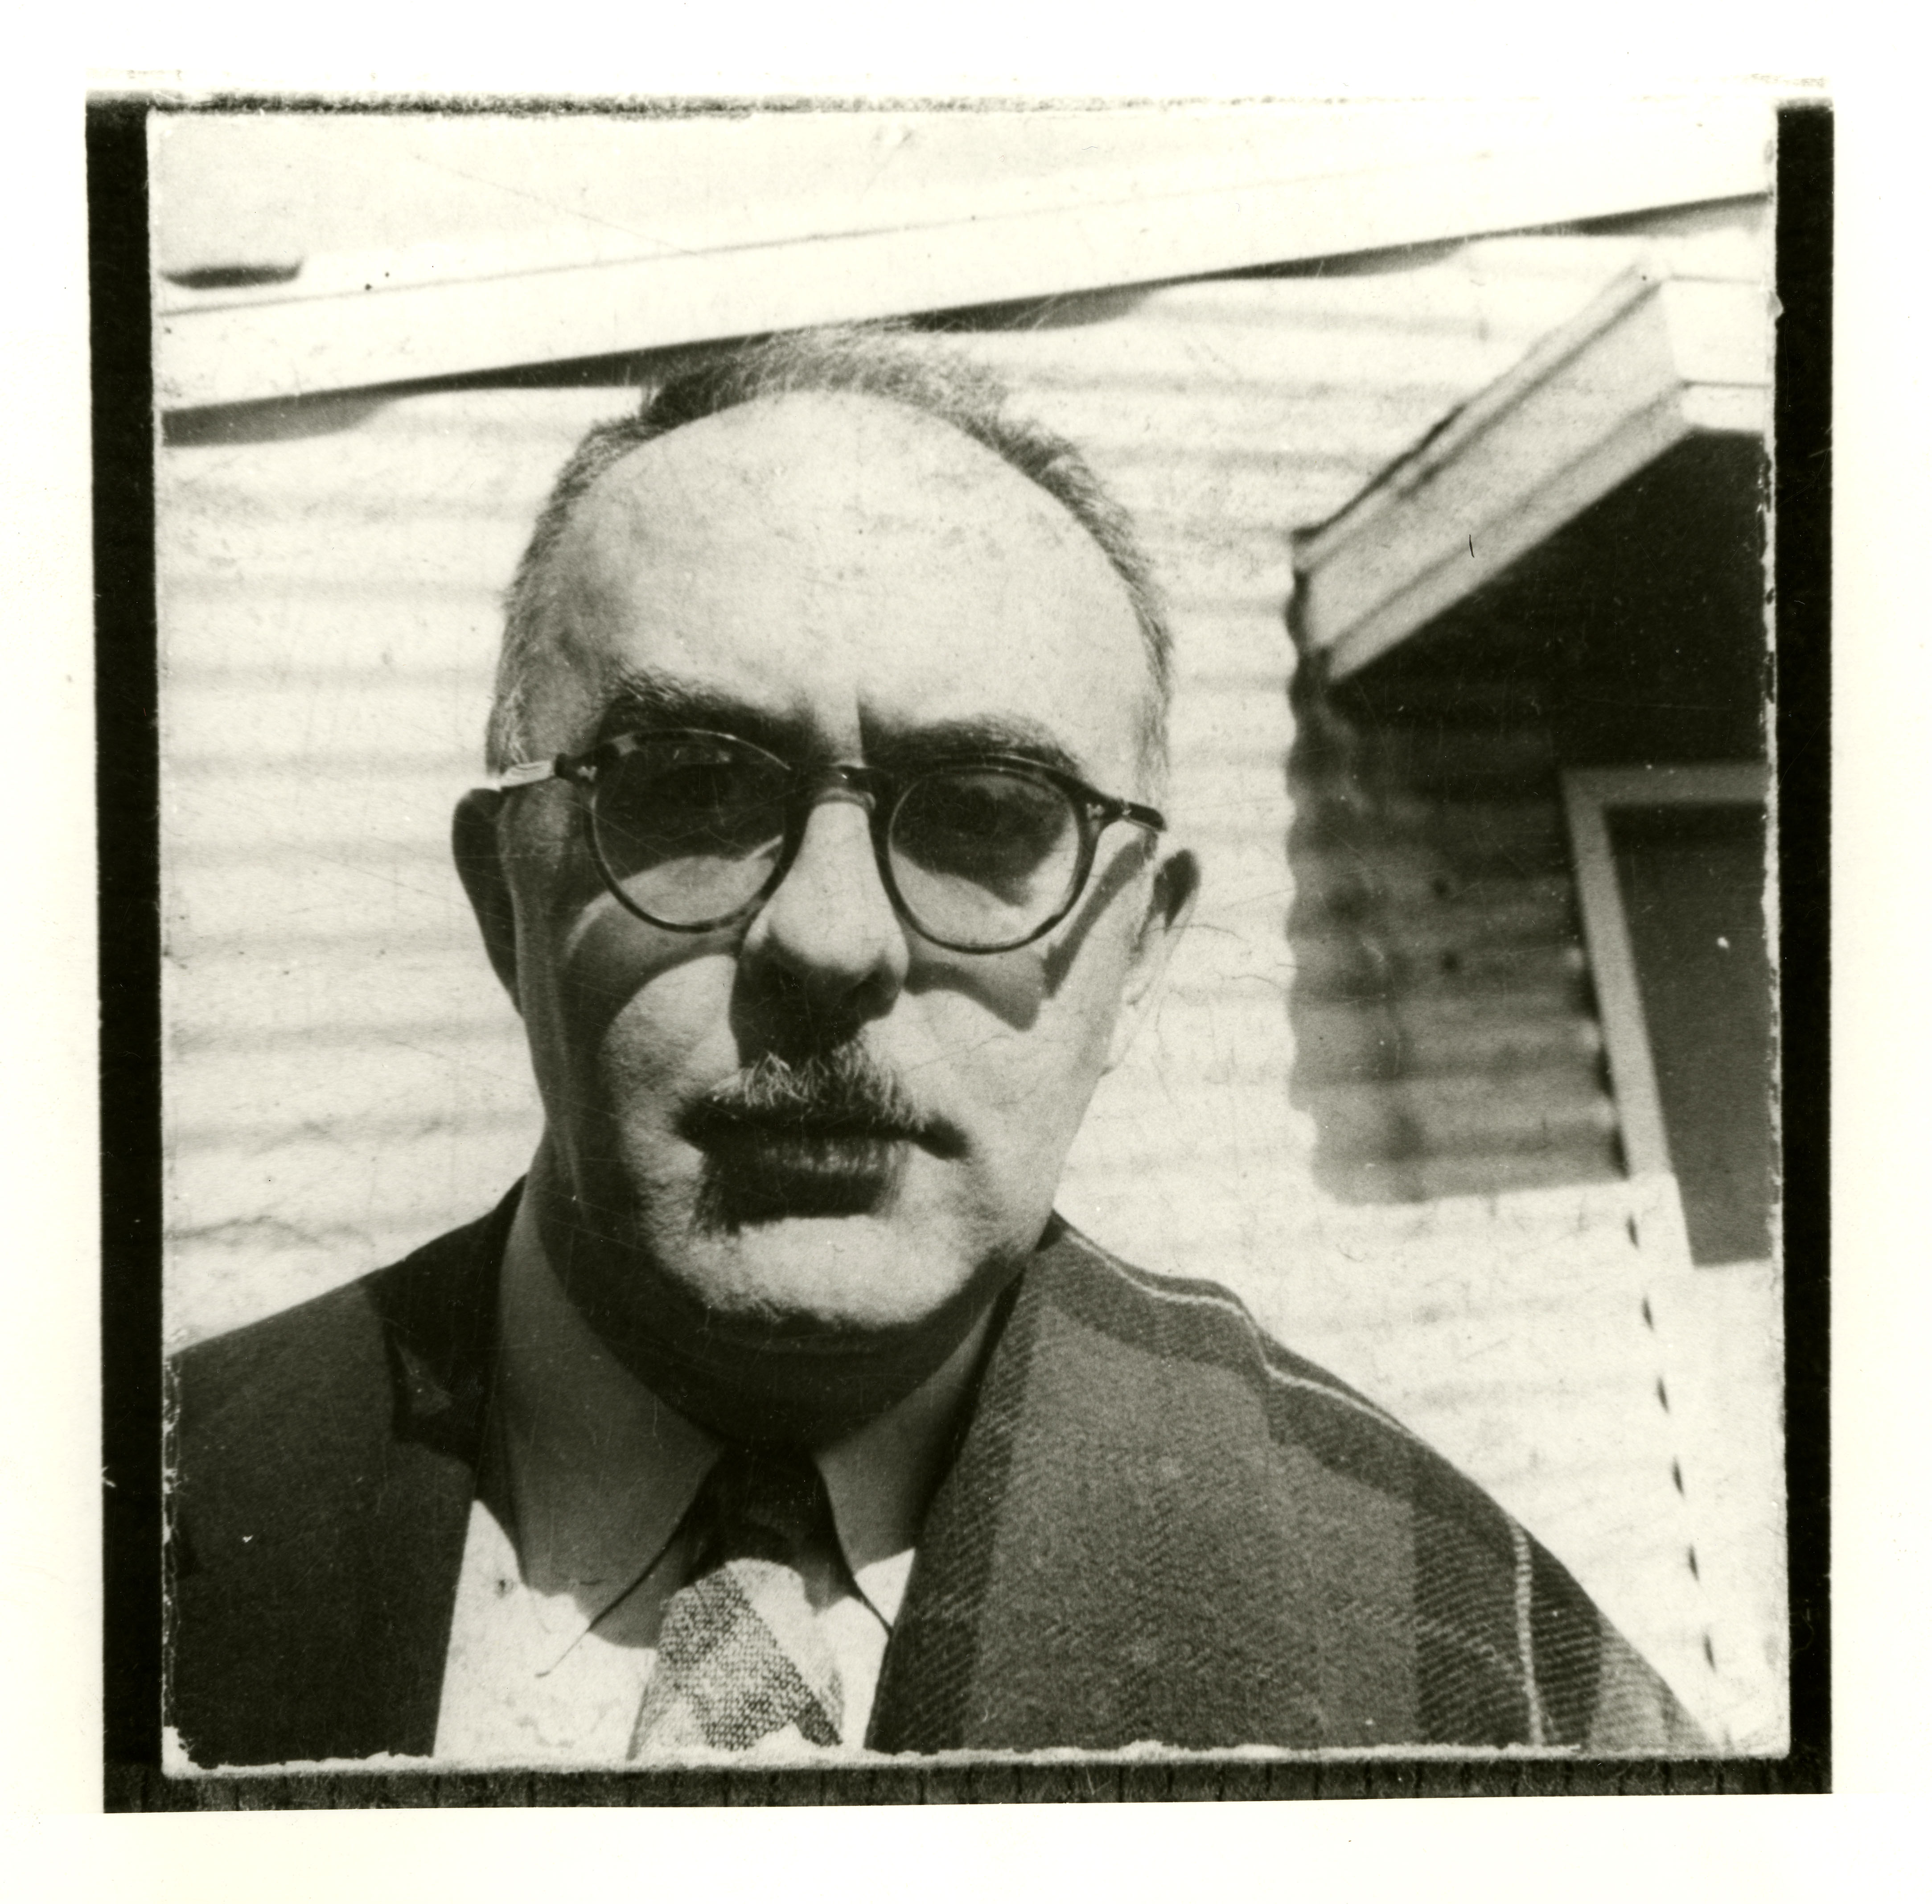 Photographer unknown. [Charles Olson at Black Mountain College], ca. 1952. (1)